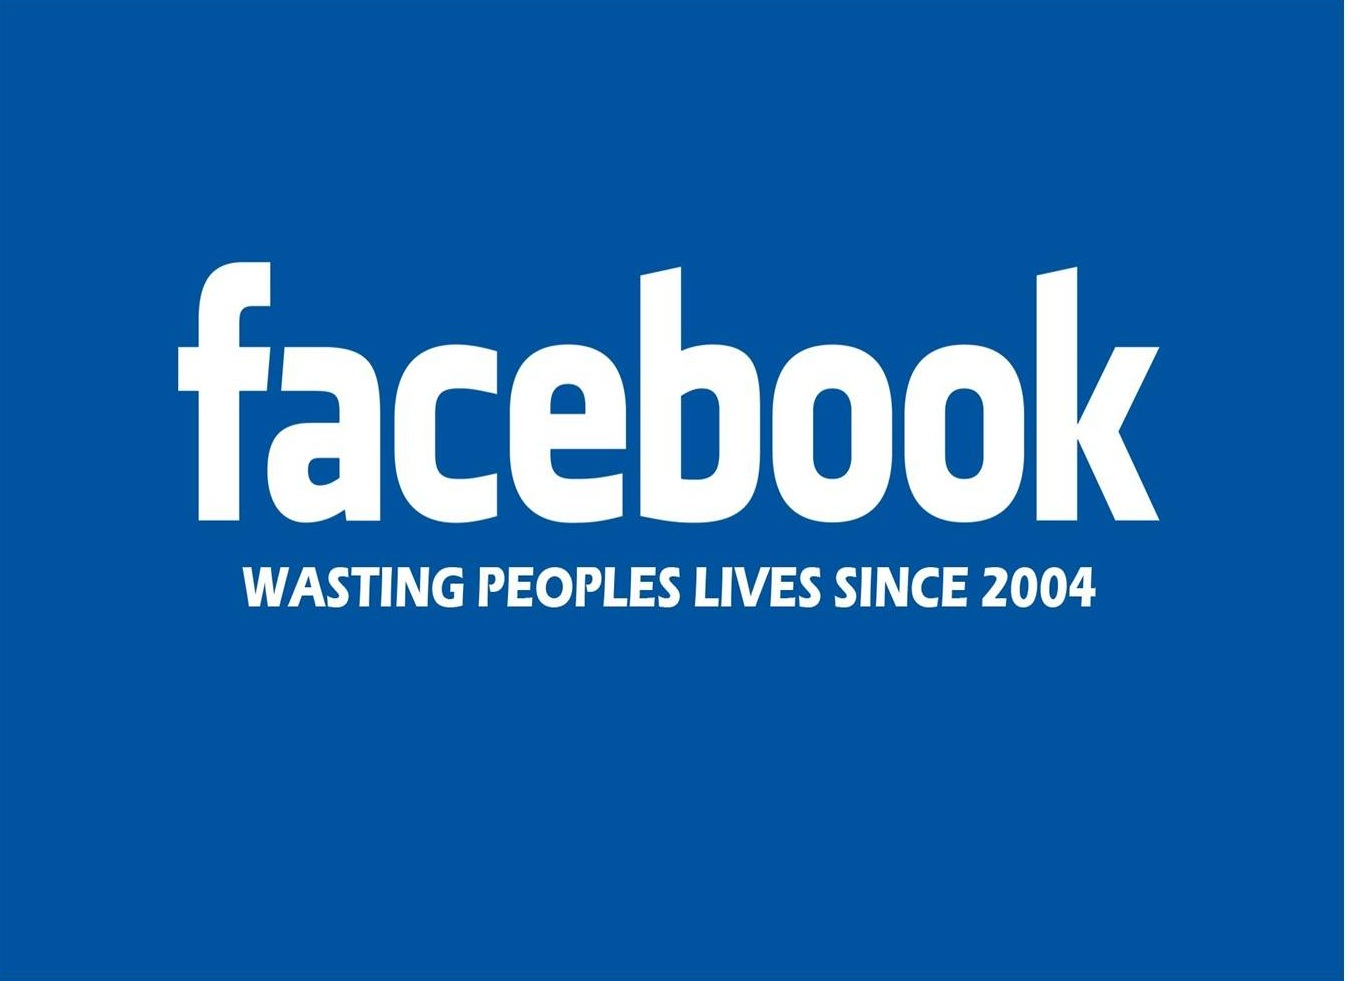 Facebook - Wasting peoples lives since 2004